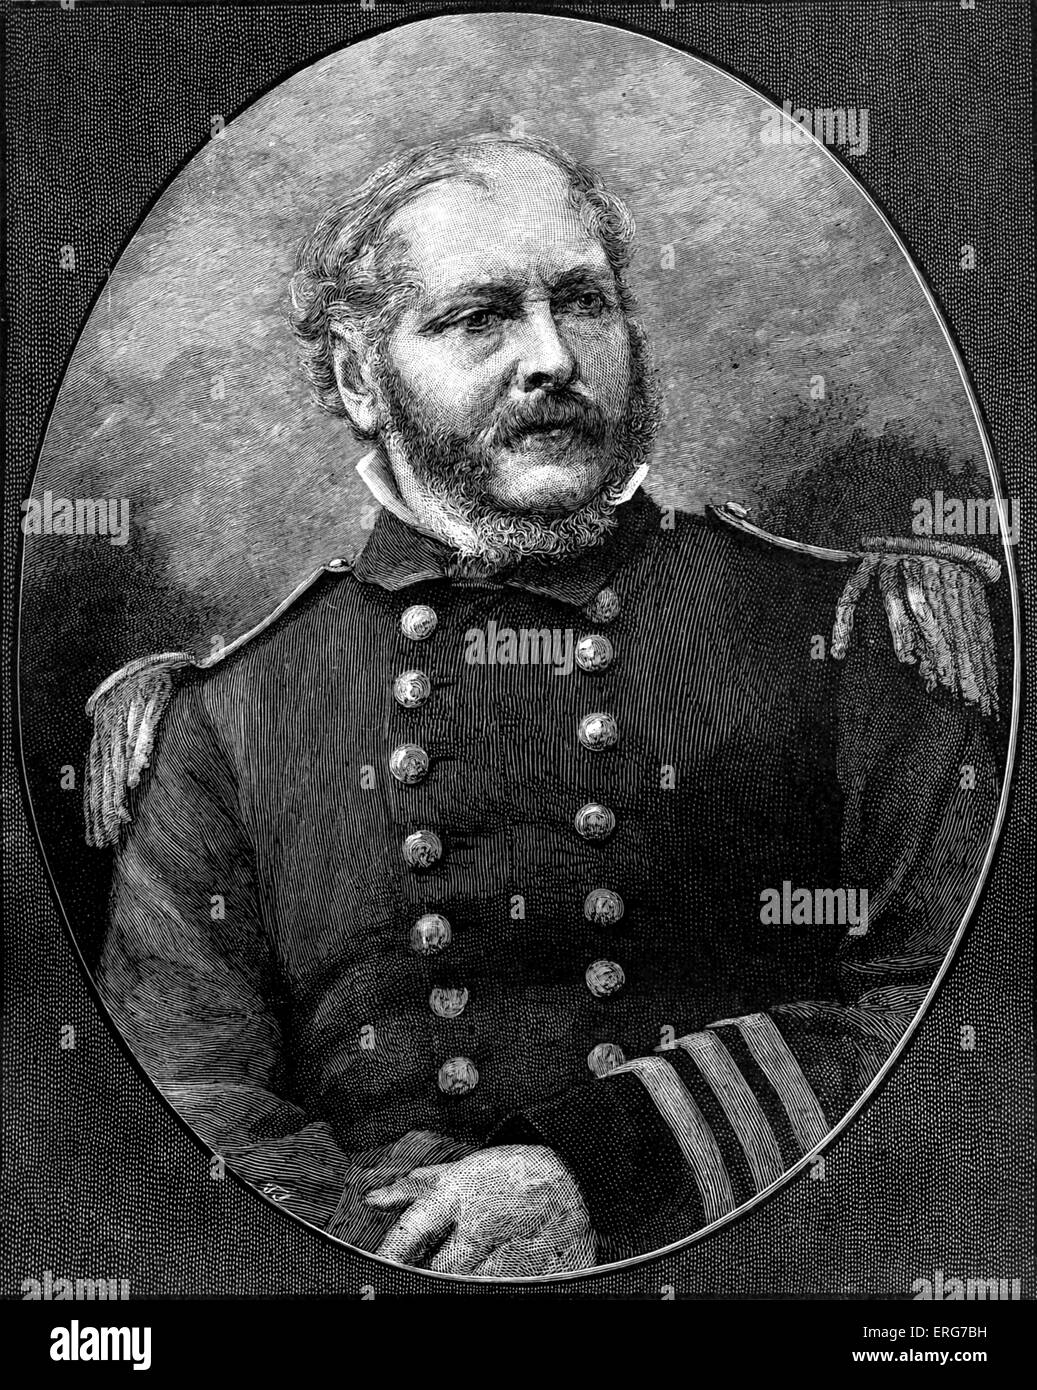 Rear Admiral John Ancrum Winslow, officer of the United States Navy and captain of the USS Kearsage during the American - Stock Image